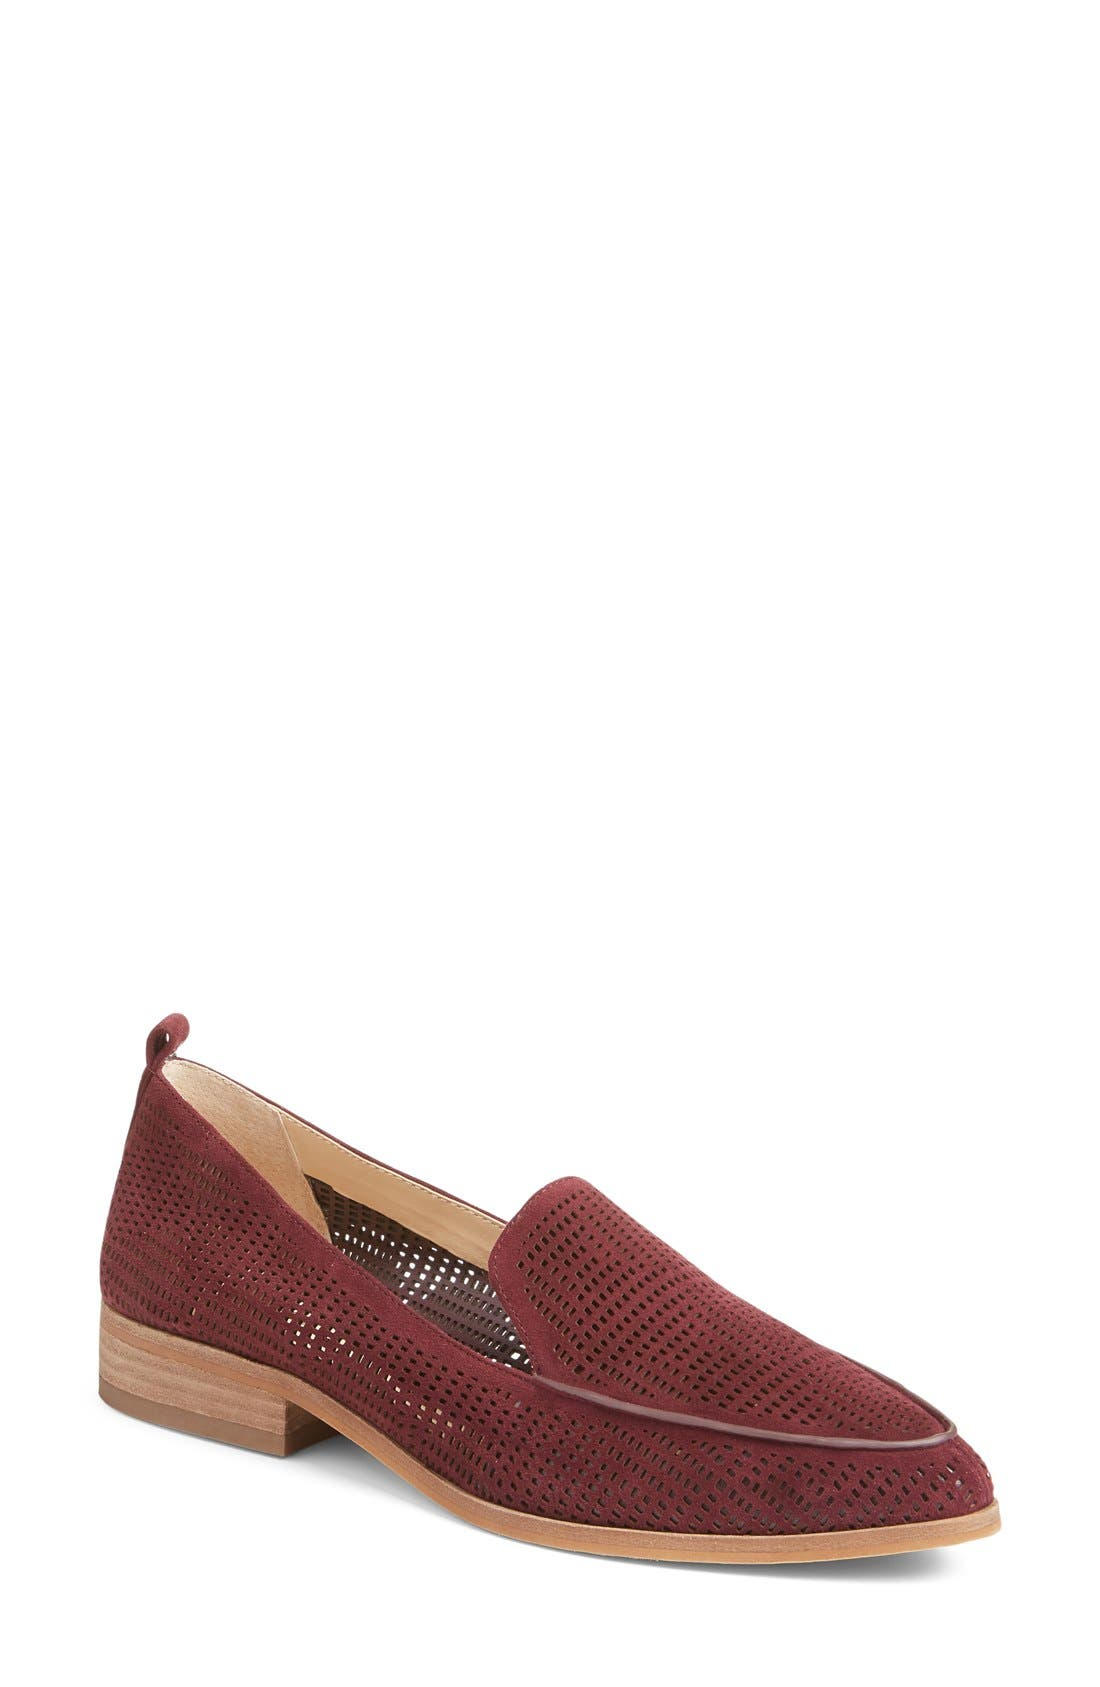 Alternate Image 1 Selected - Vince Camuto 'Kade' Cutout Loafer (Women) (Nordstrom Exclusive)